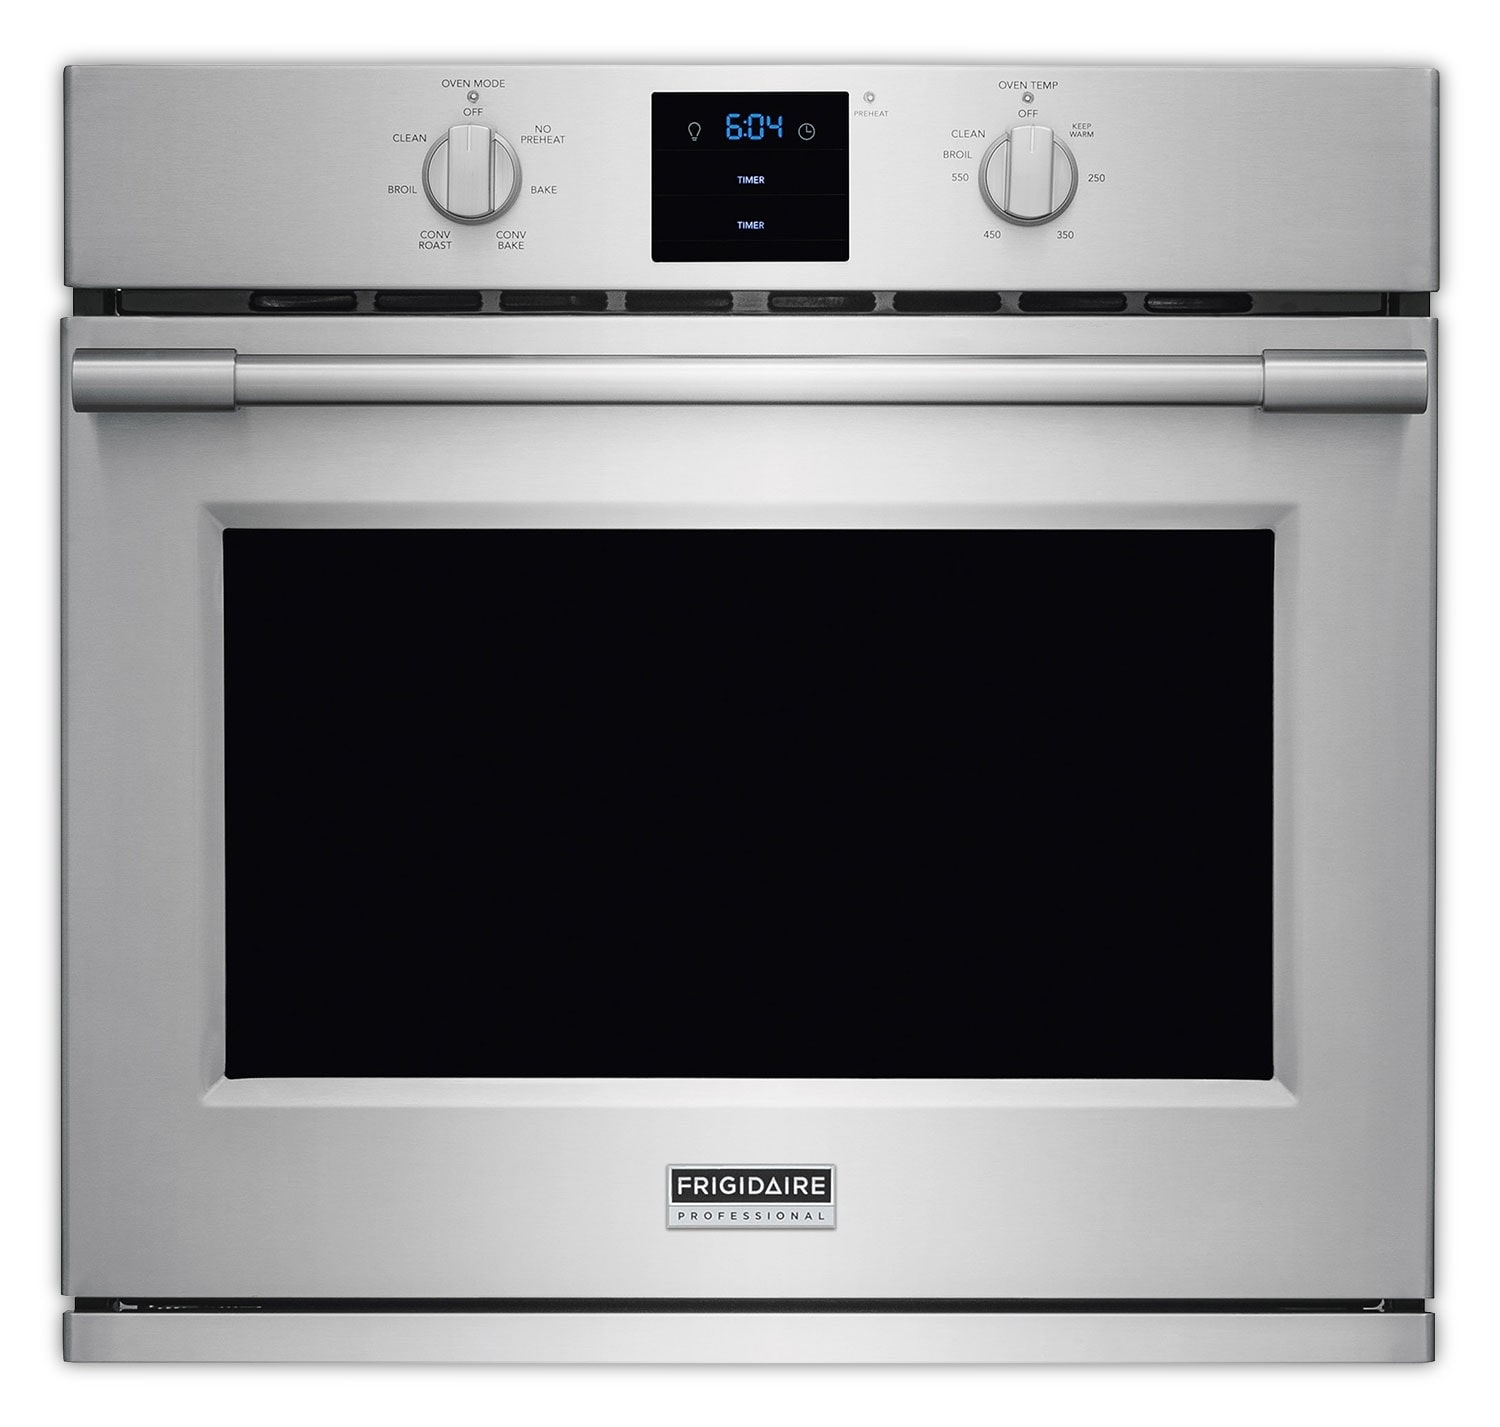 Cooking Products - Frigidaire Professional Stainless Steel Convection Wall Oven - FPEW3077RF